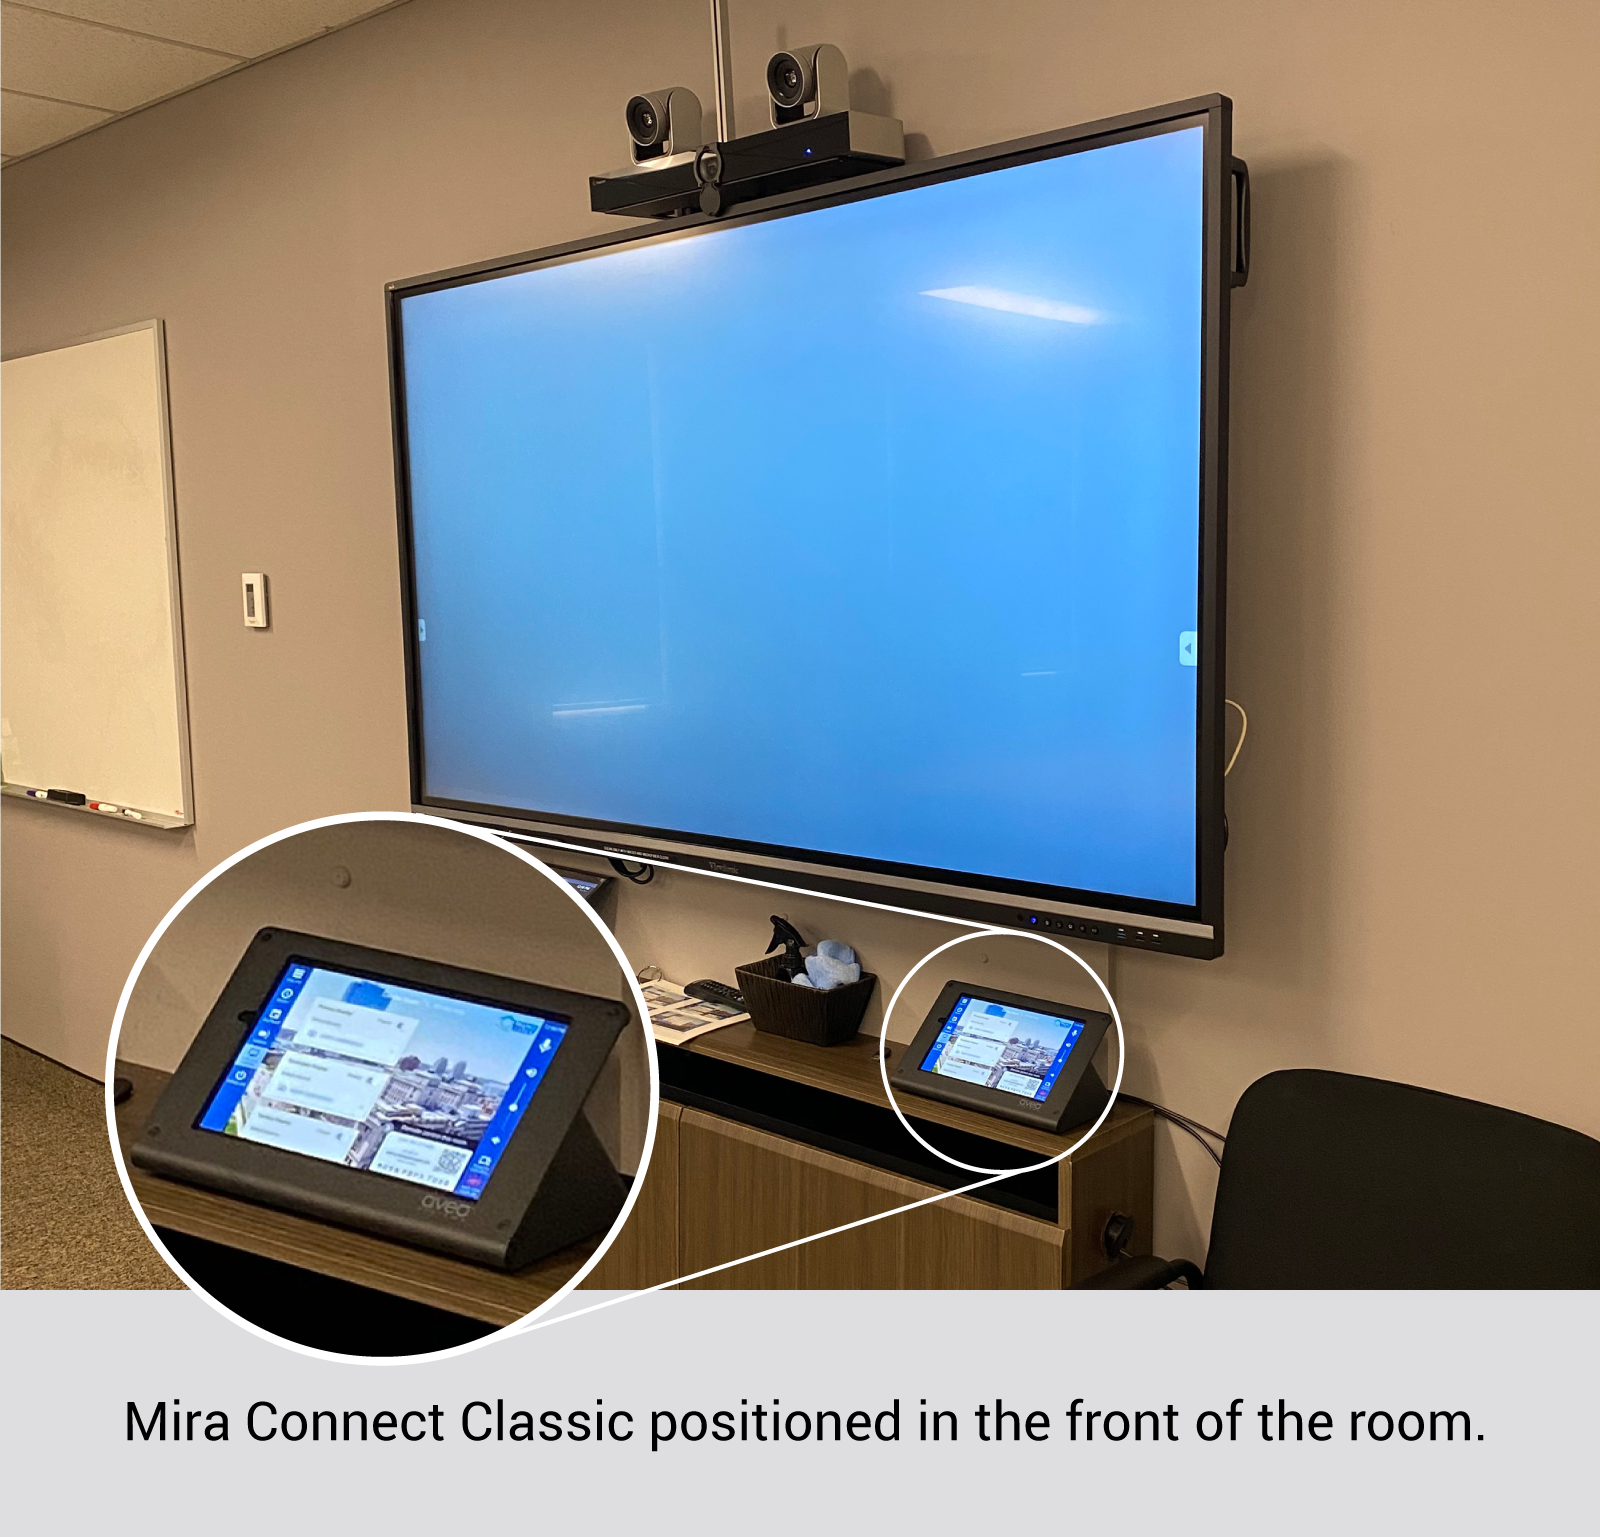 Thames Valley District School Board TVDSB using Mira Connect AV Control System